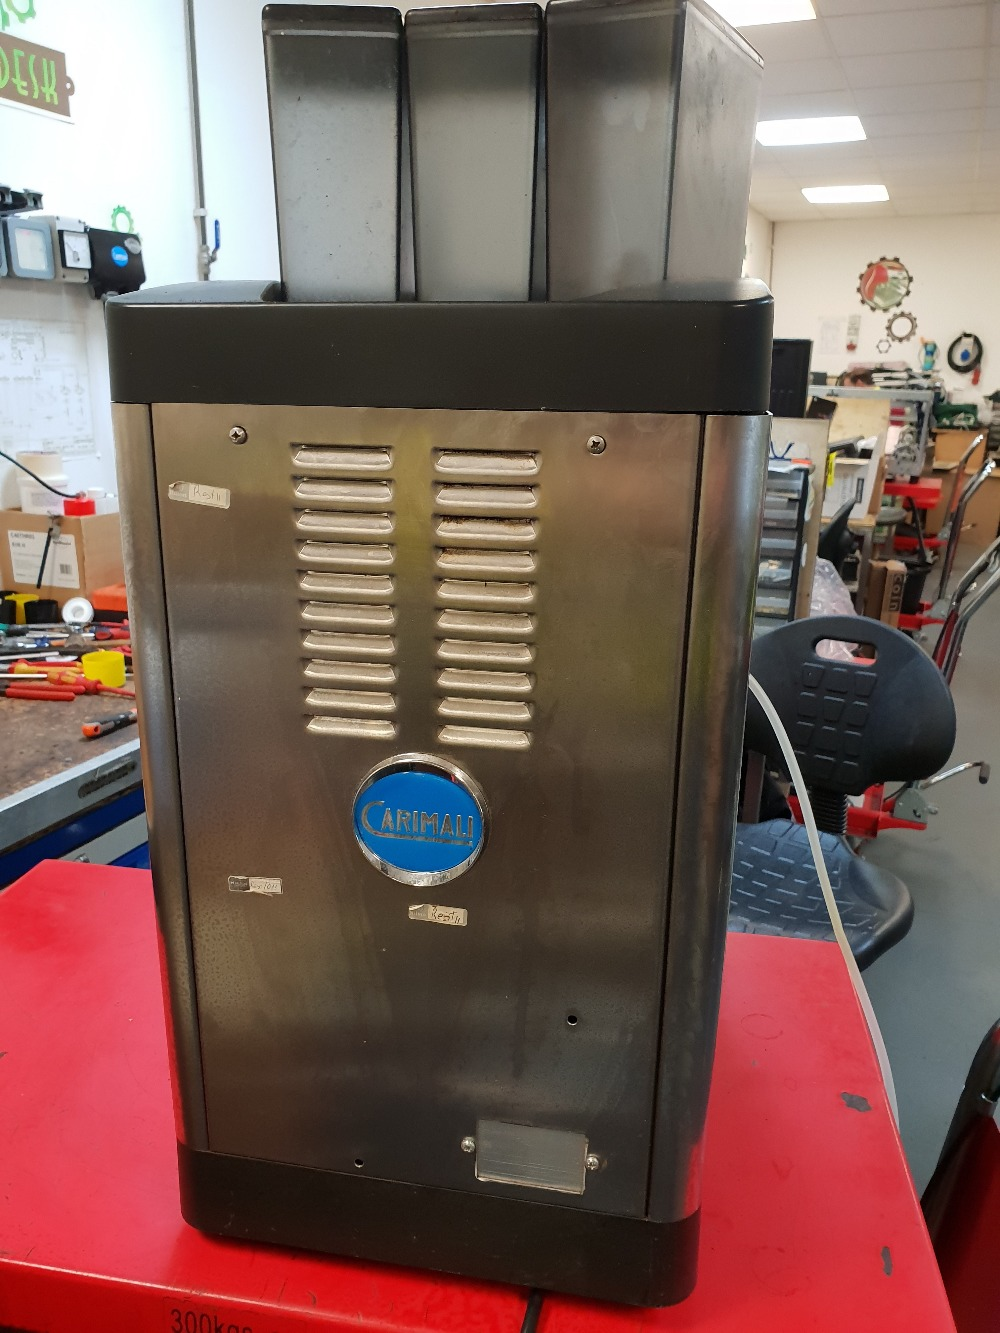 Lot 20 - Carimali Solar Touch Drinks Machine – Bean to cup Coffee + Chocolate & Other DrinksThe Carimali